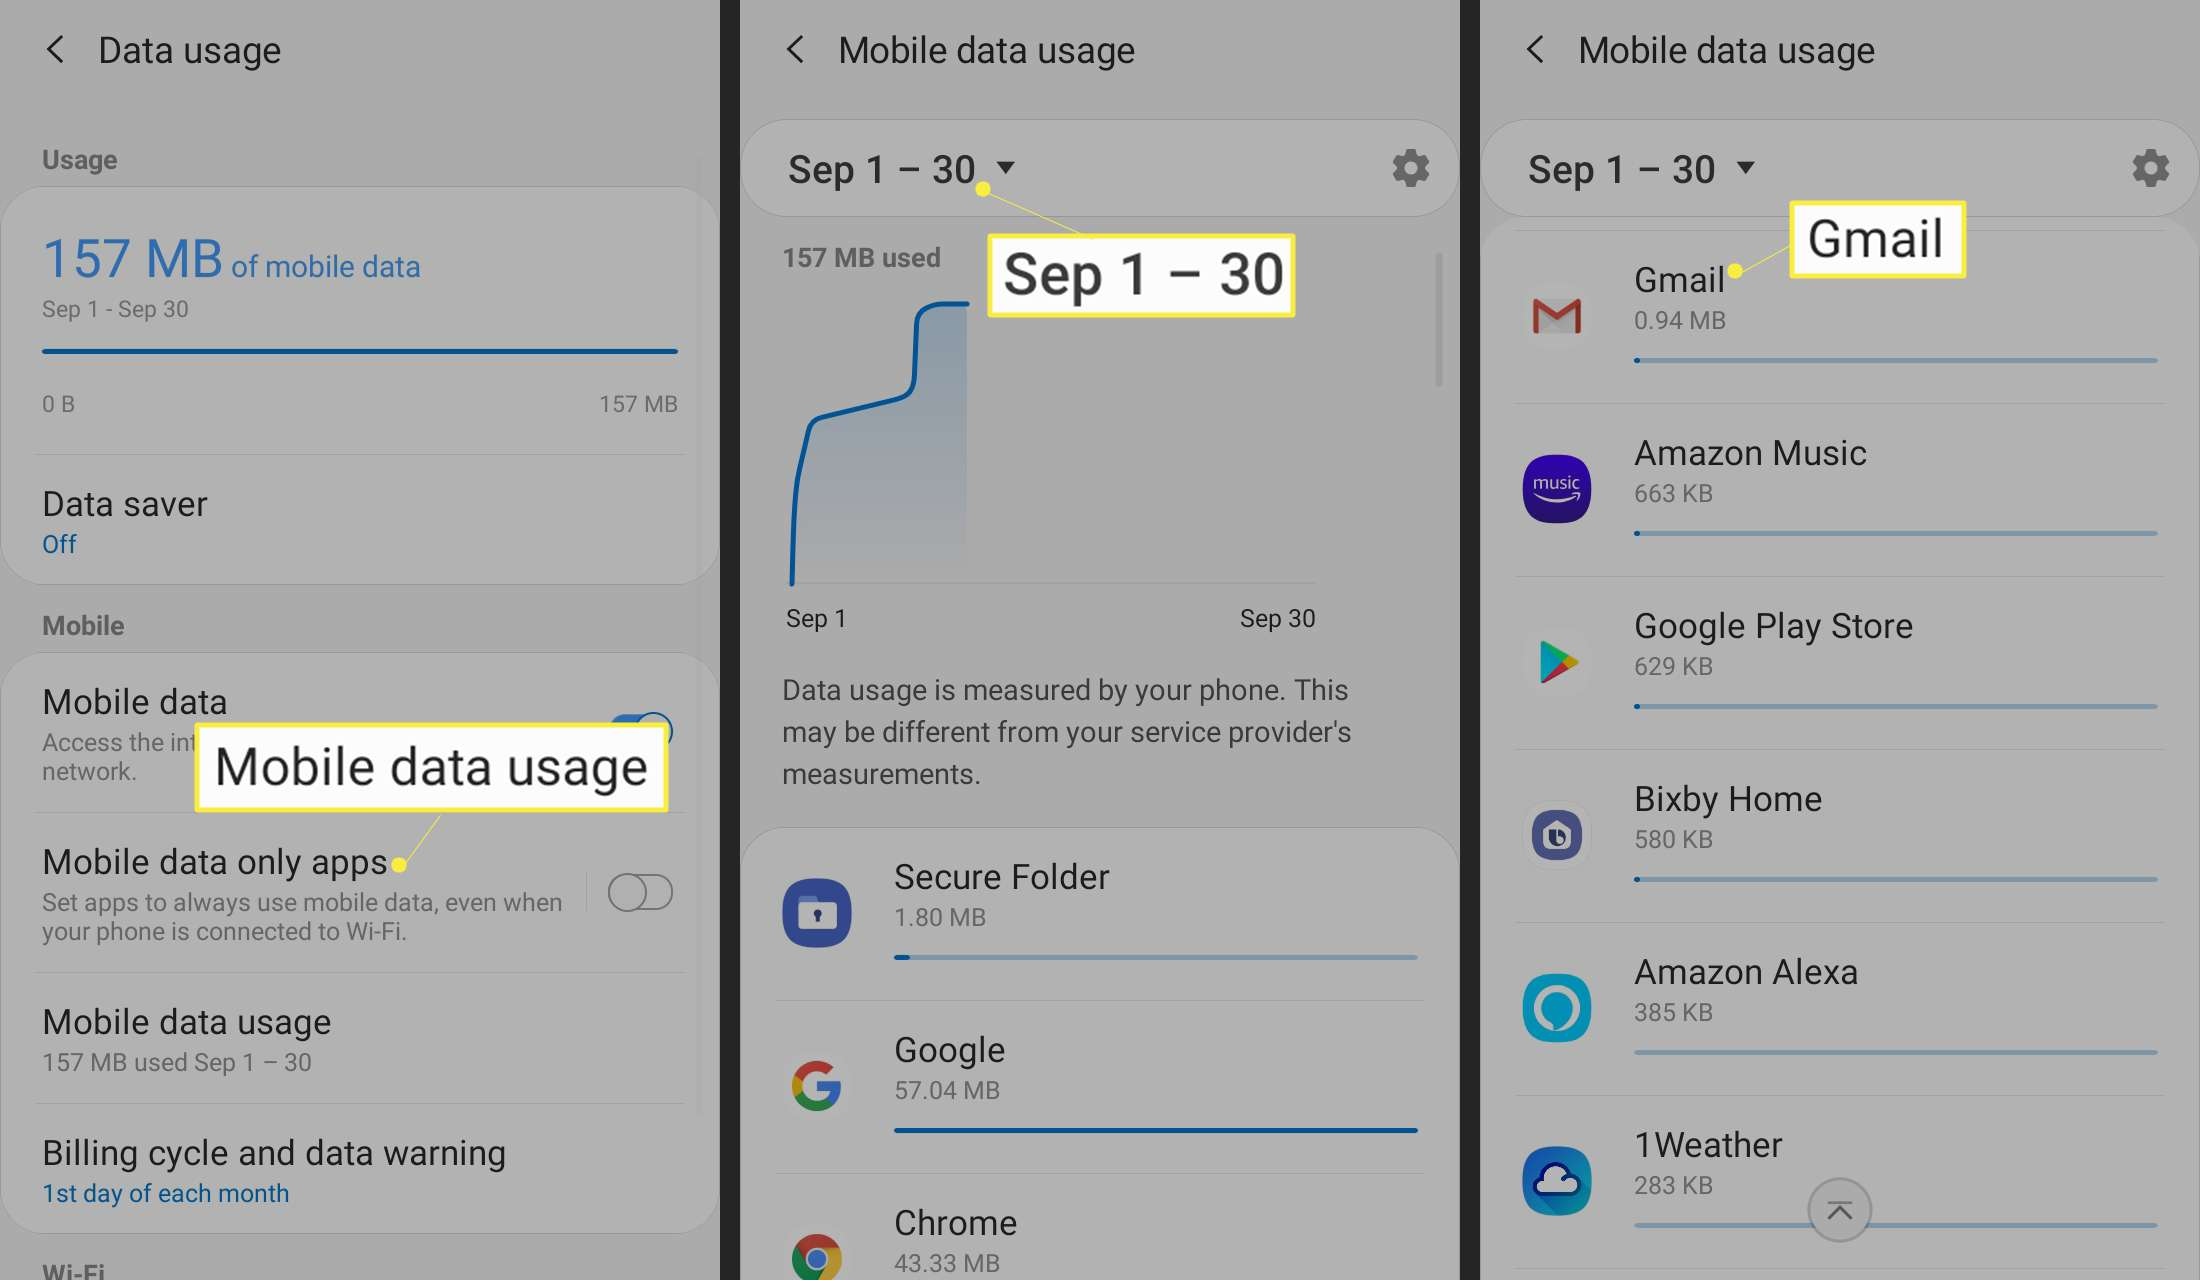 Tap Mobile data usage, tap the date, and tap any app to see how much data it uses.